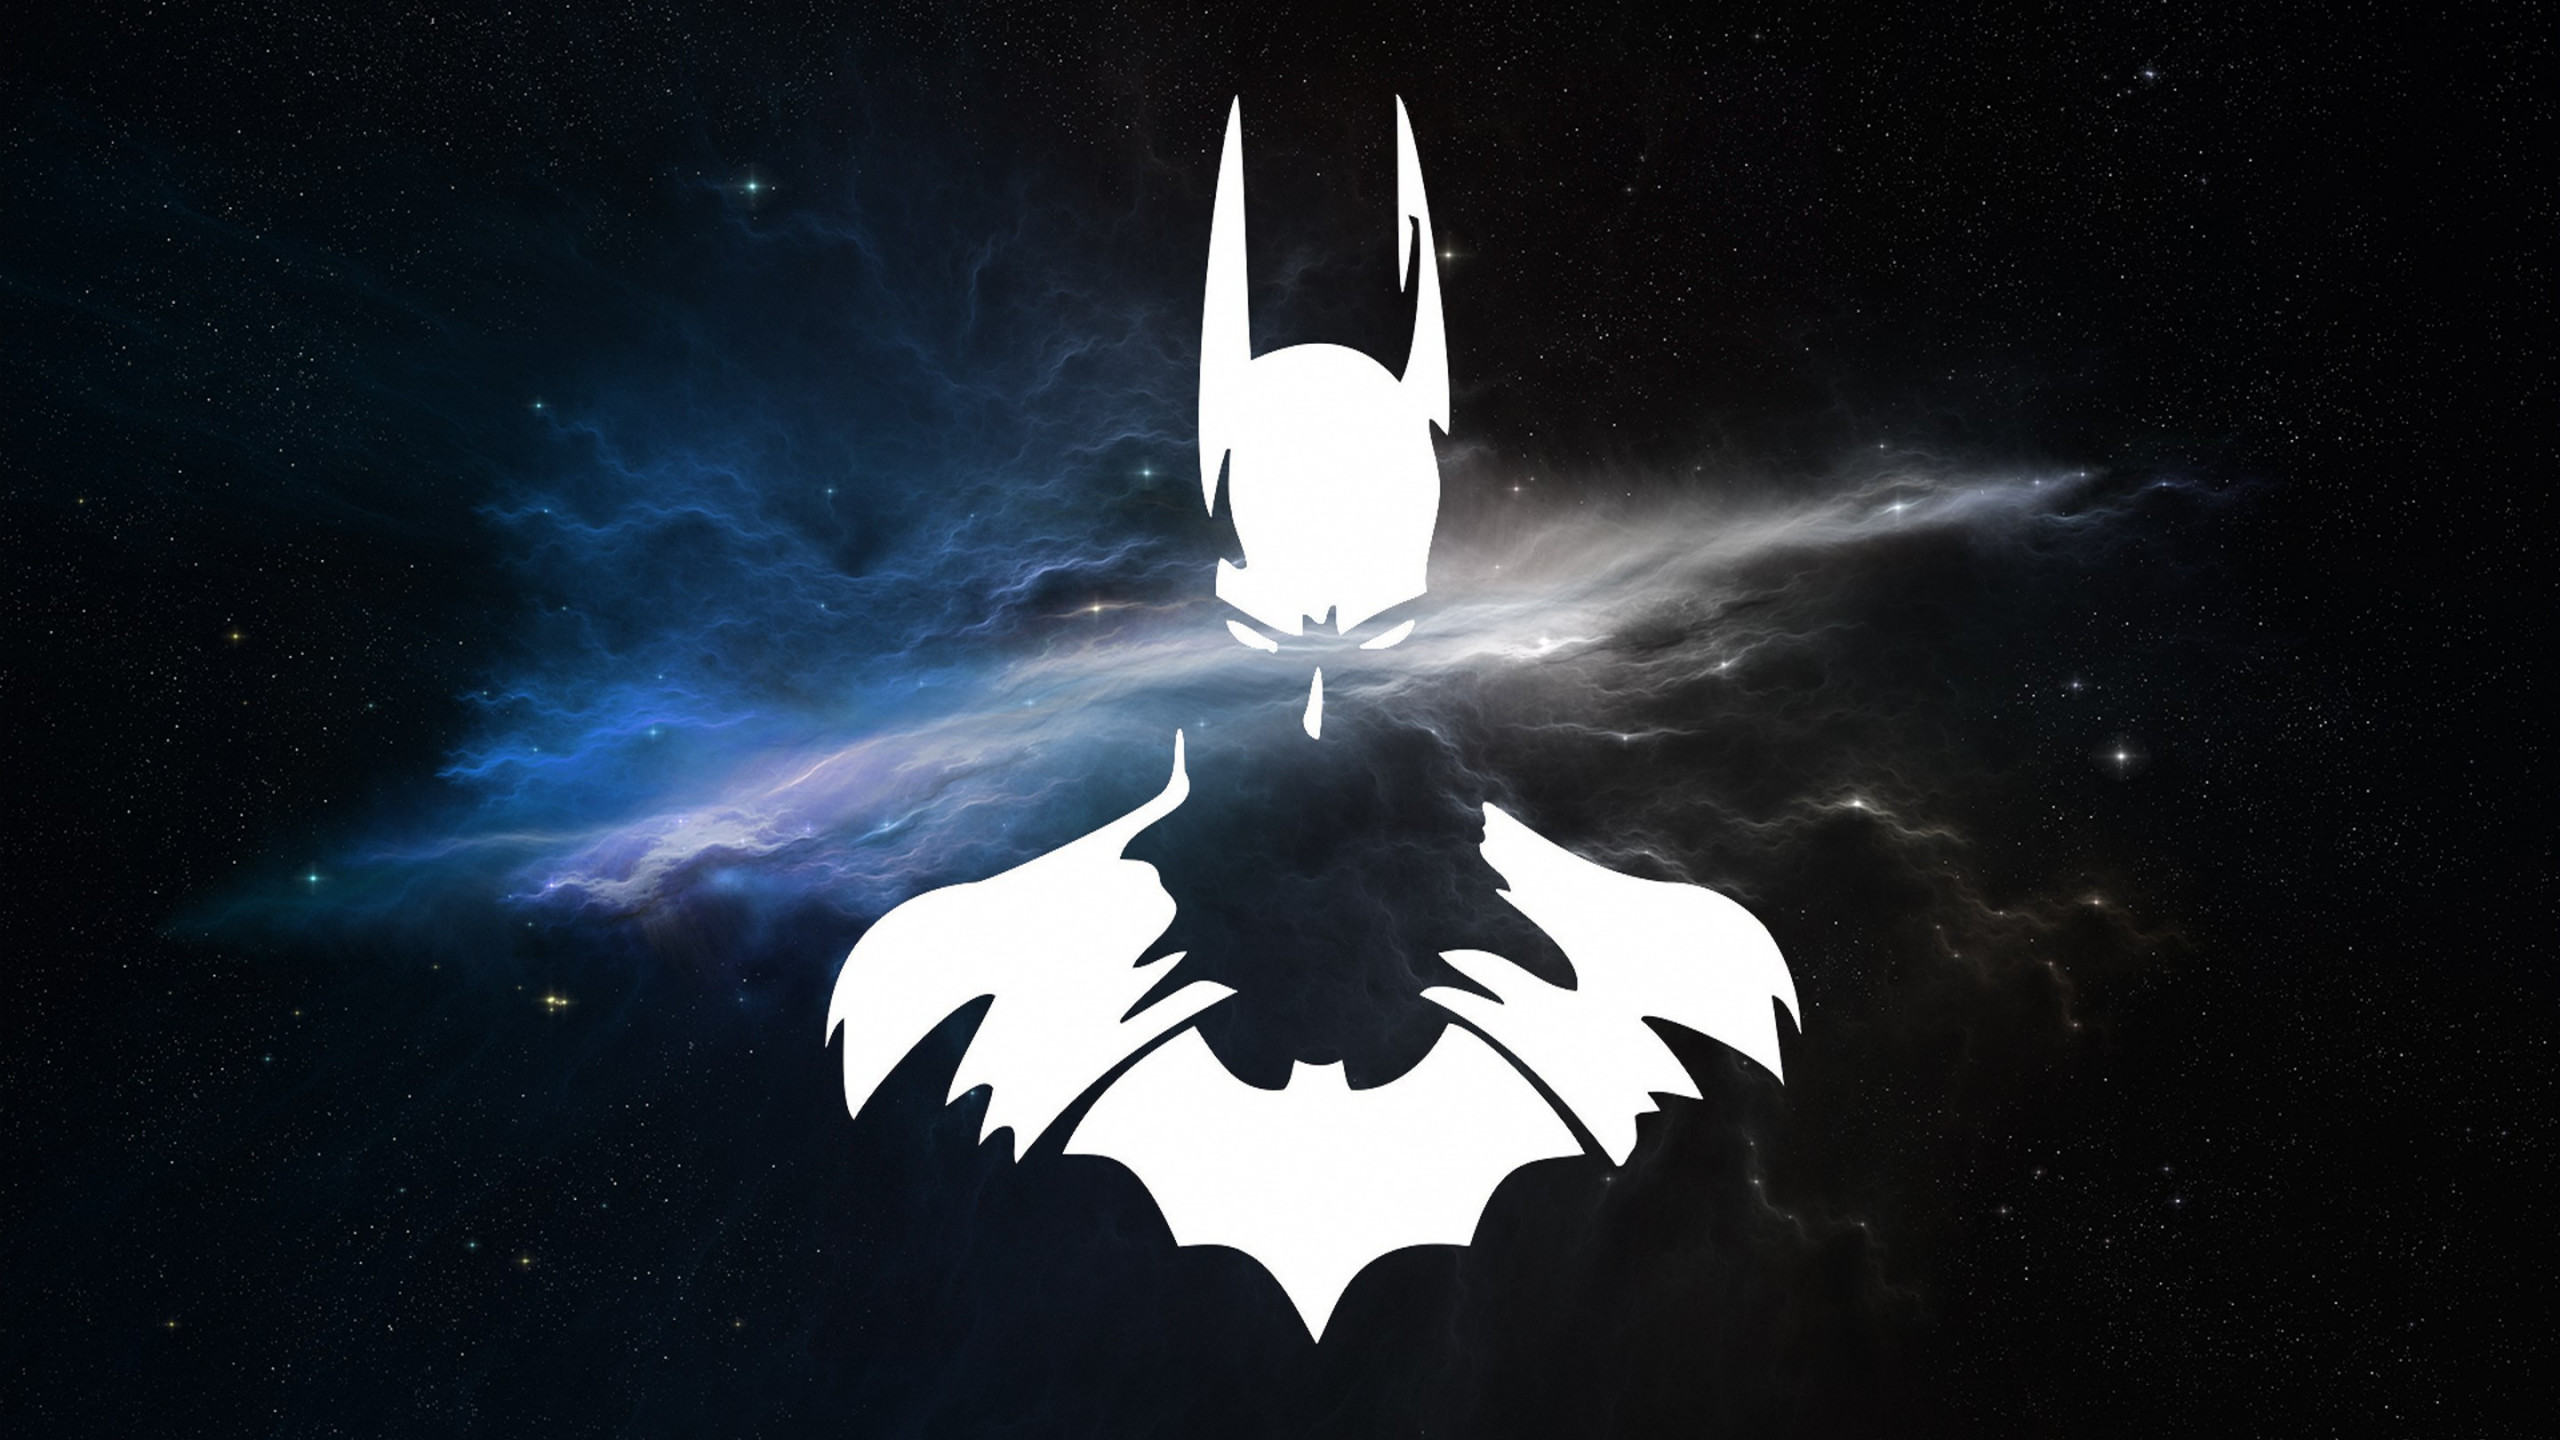 Batman Dark Knight wallpaper 2560x1440